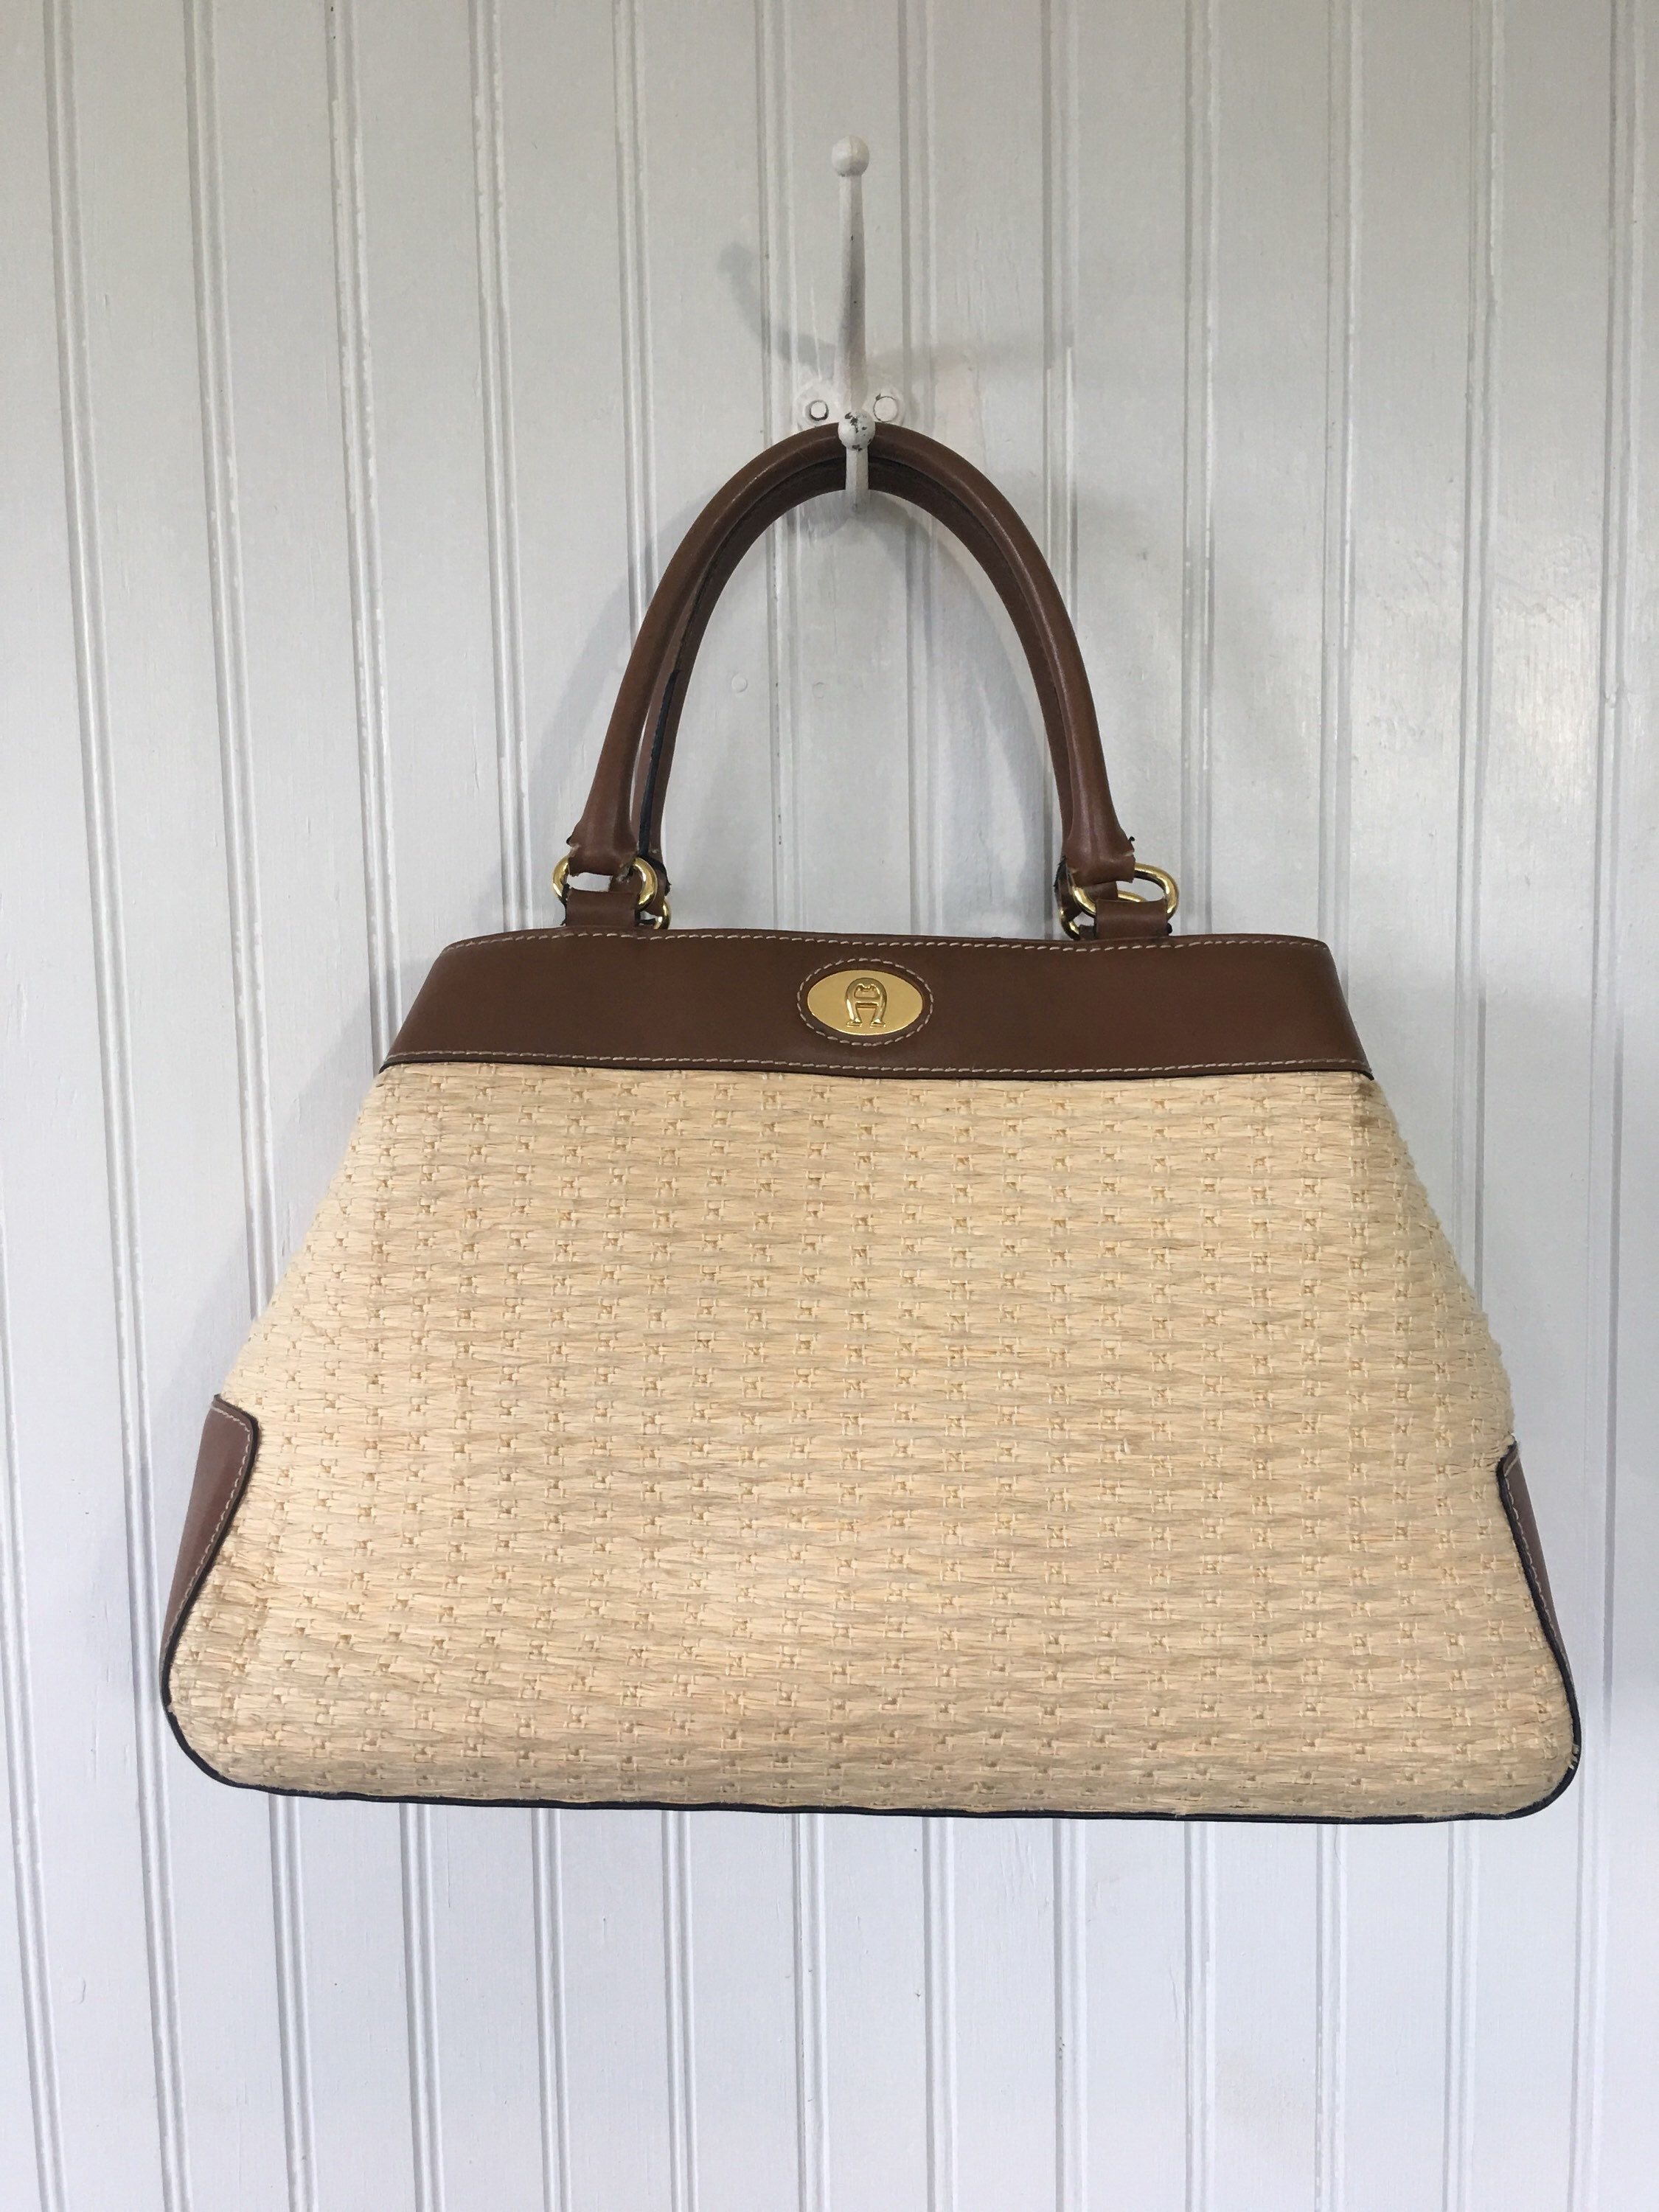 82750c64fc9 Pin by Grit and Glam on Grit and Glam Vintage   Leather weaving, Bags,  Basket bag